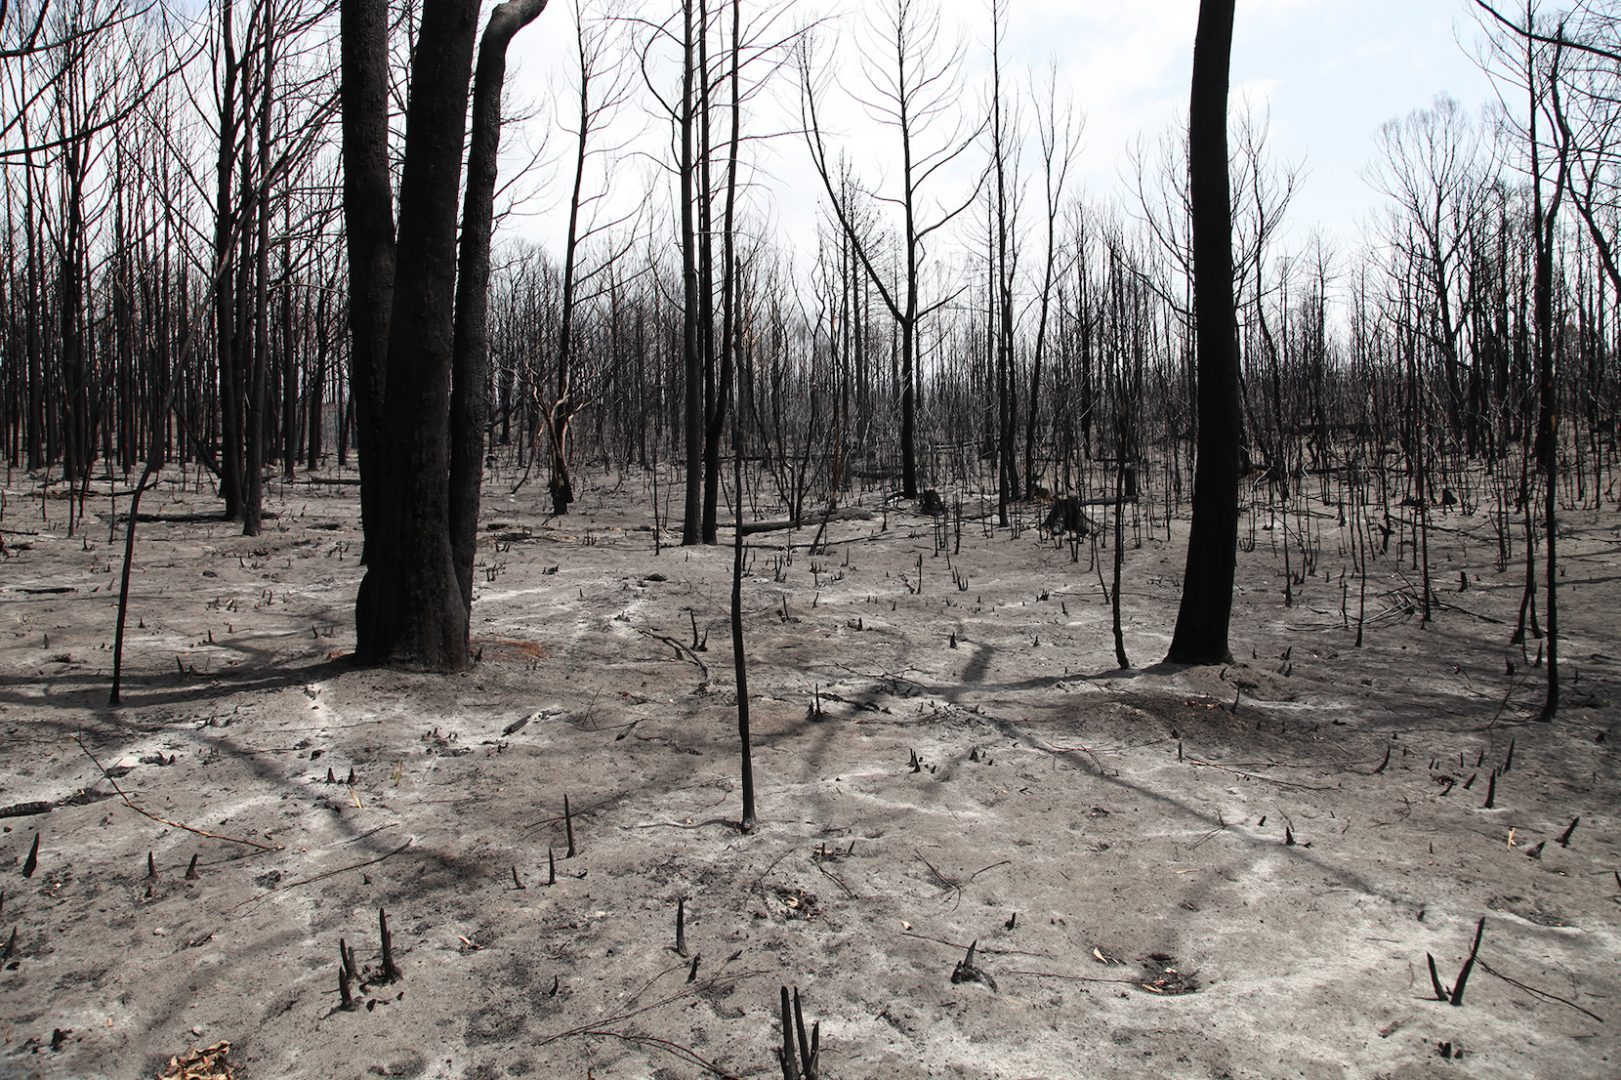 Artist and activist HAYDEN FOWLER on the Australian bushfires 7